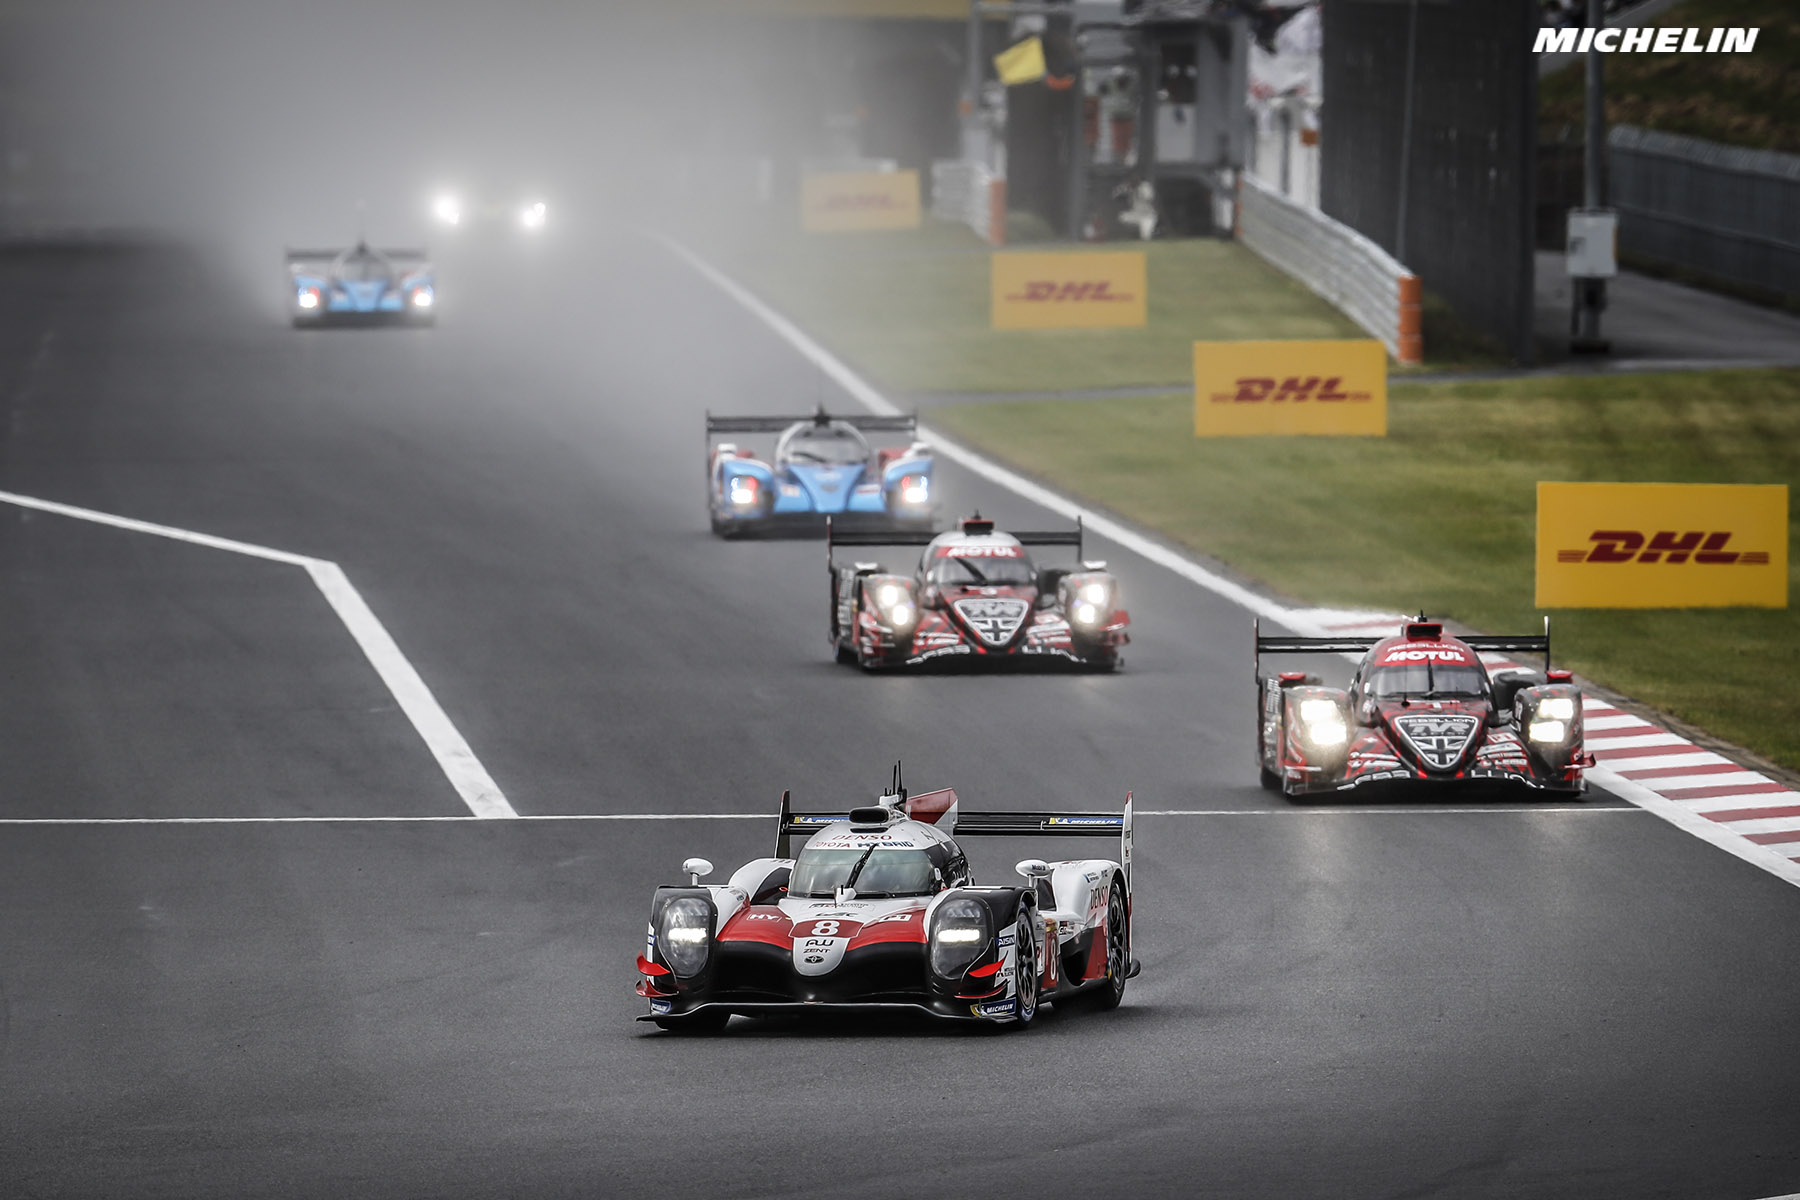 FIA WEC - 6 Hours of Fuji - Racecard